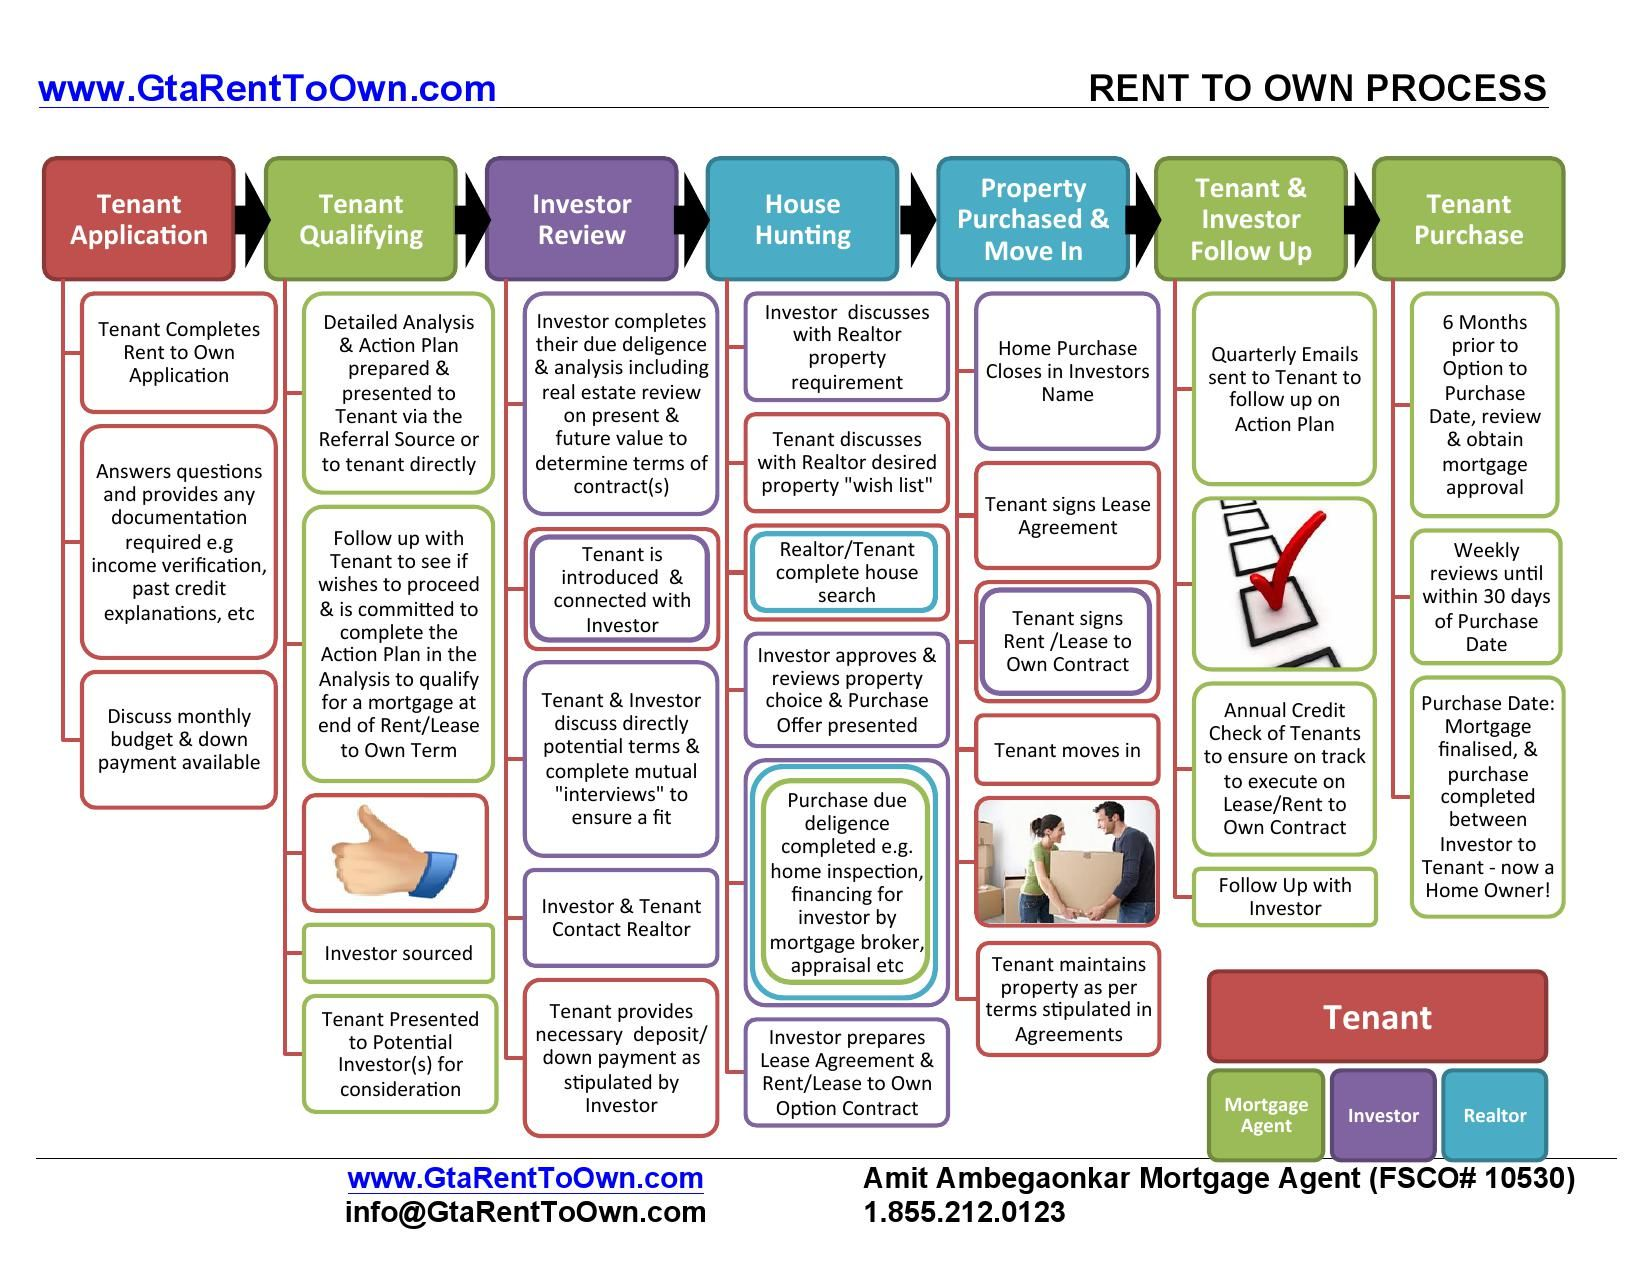 Dreamlife Rent To Own Best Rent To Own Program Amazing Rent To Own Process Home Ownership How To Plan Rent